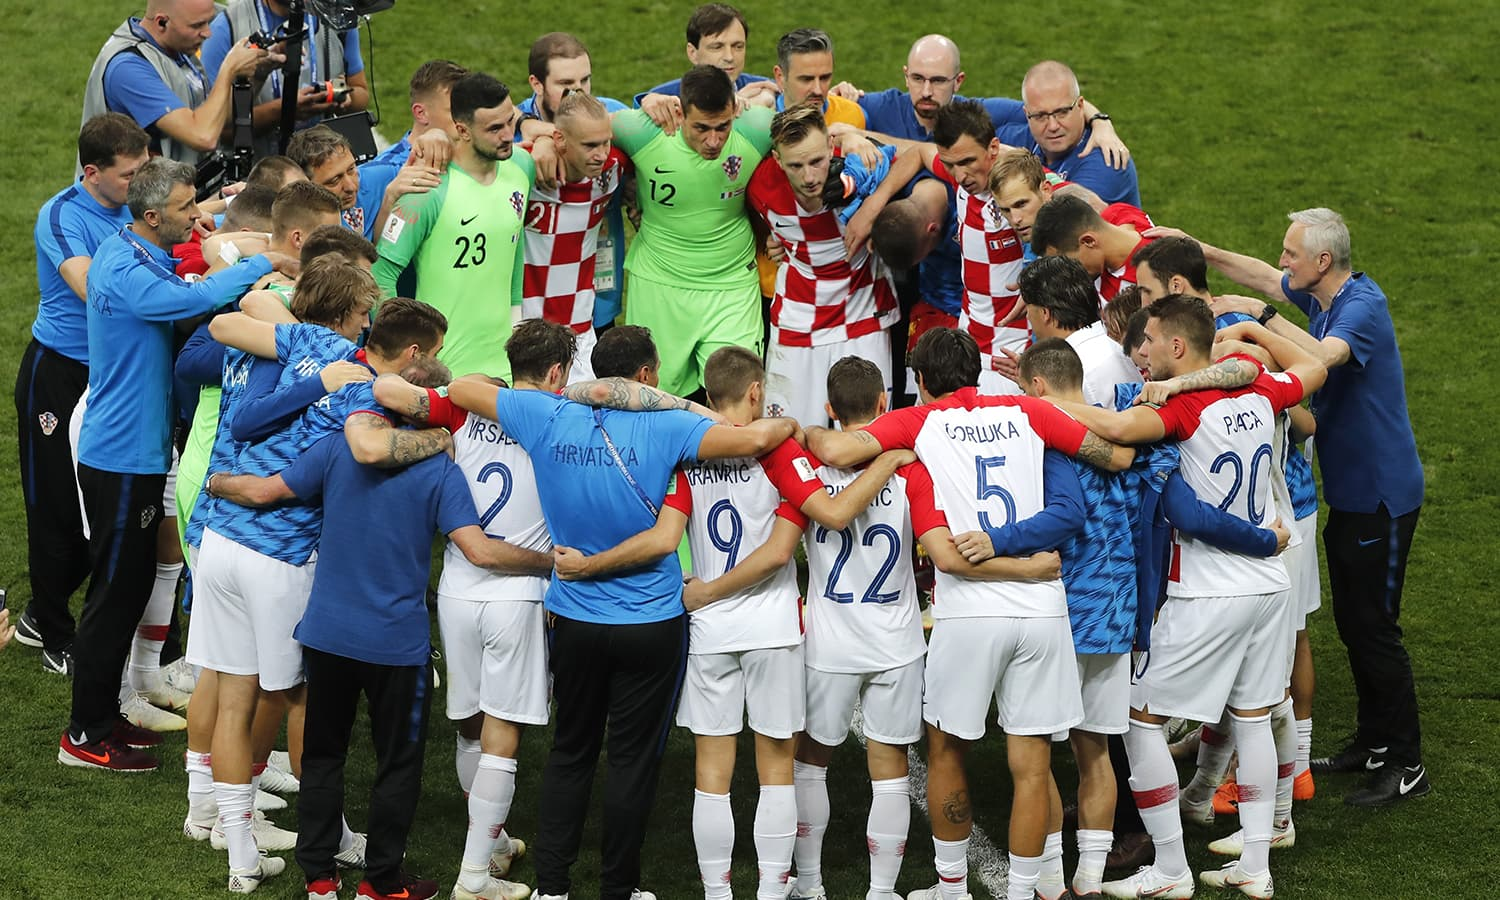 Croatian players after the final match between France and Croatia at the 2018 World Cup in the Luzhniki Stadium in Moscow. — AP